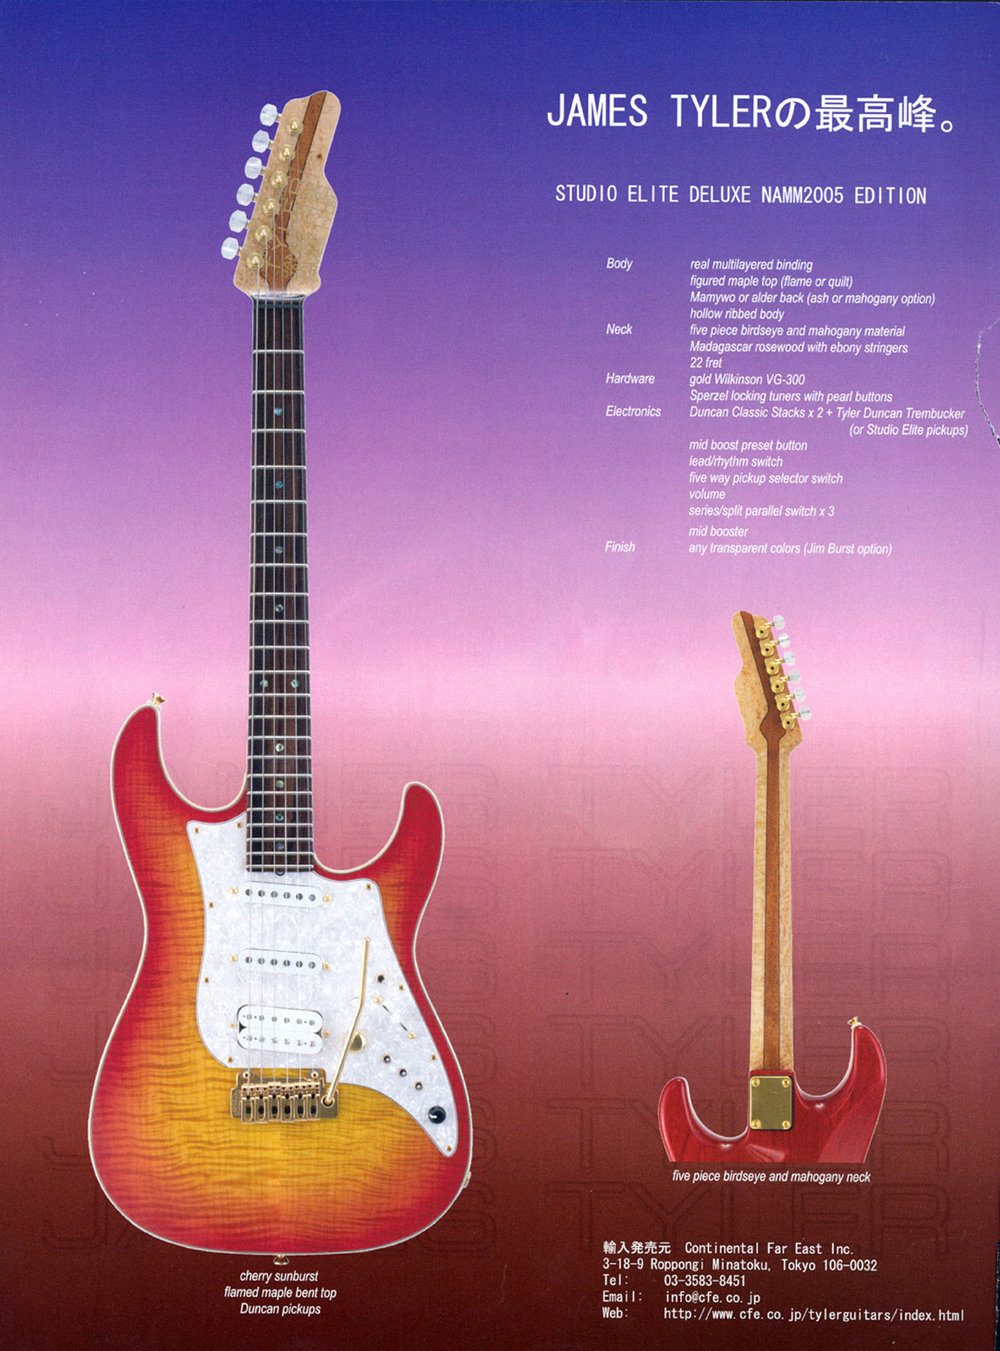 Copy of 2005 Guitar Magazine